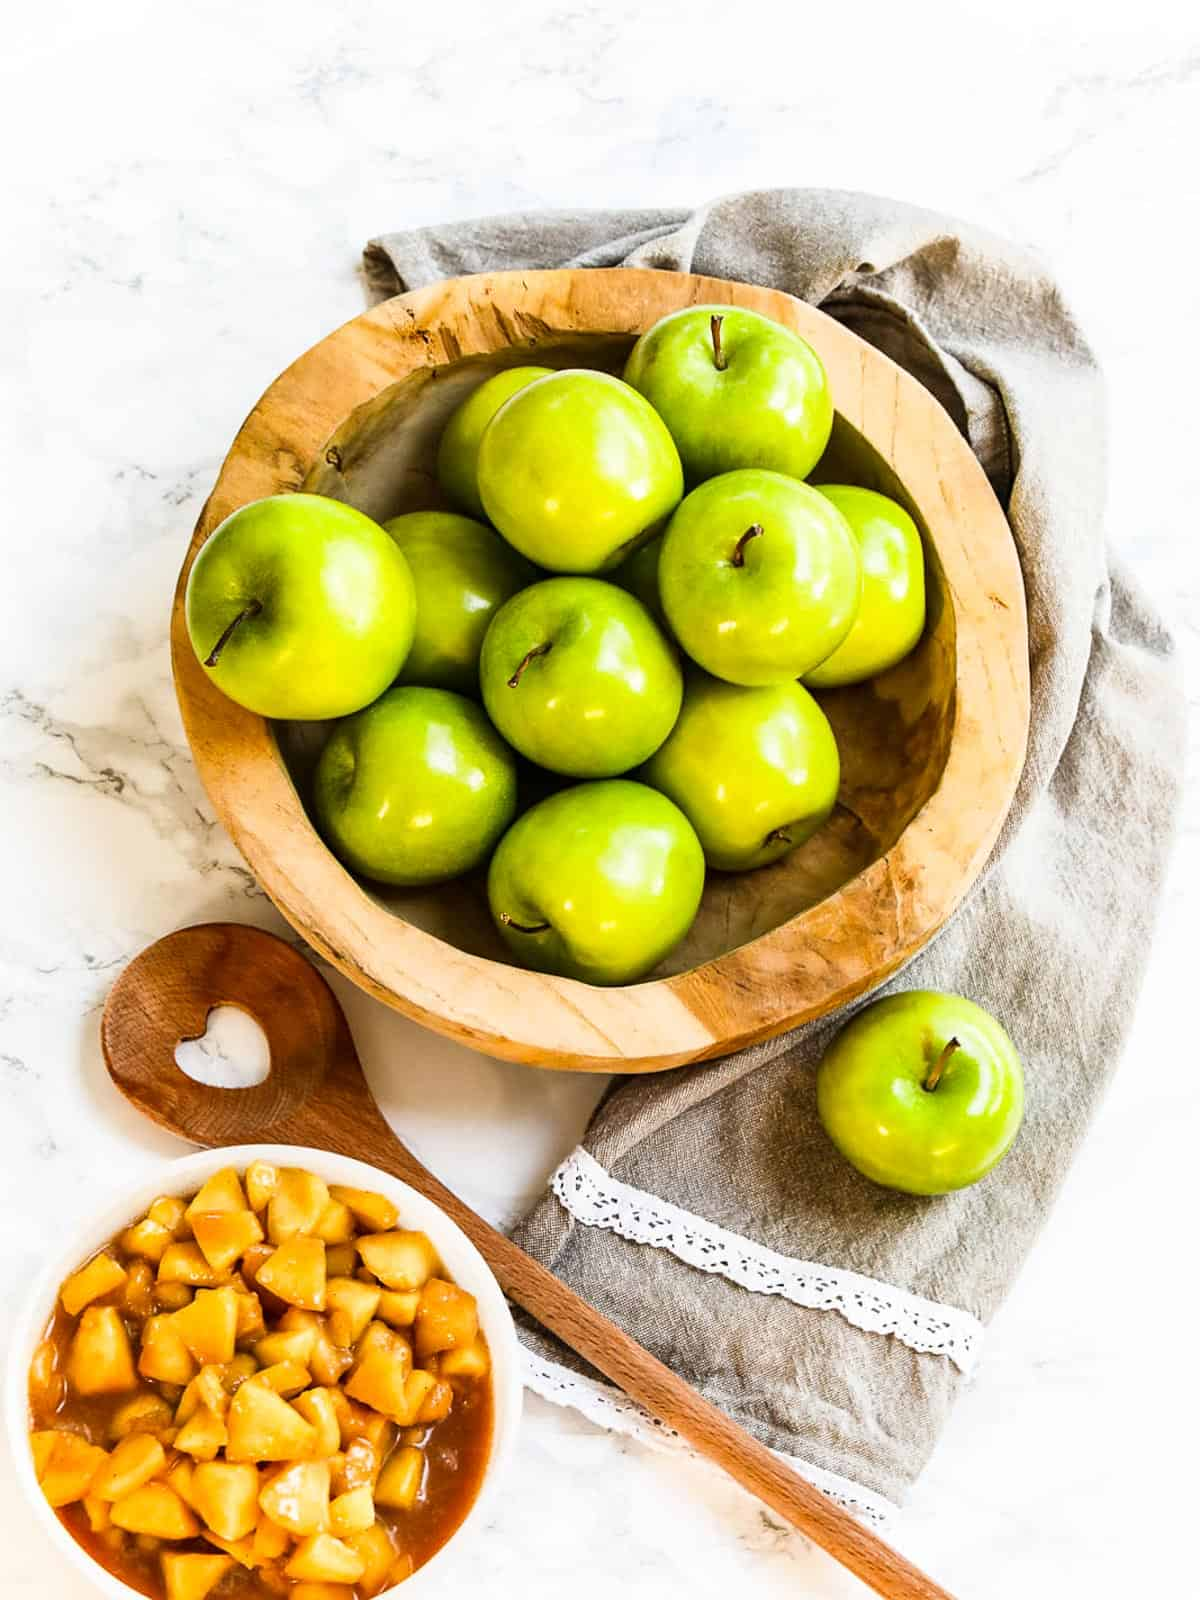 A wood bowl filled with green apples a towel, and bowl of cooked apple pie filling.